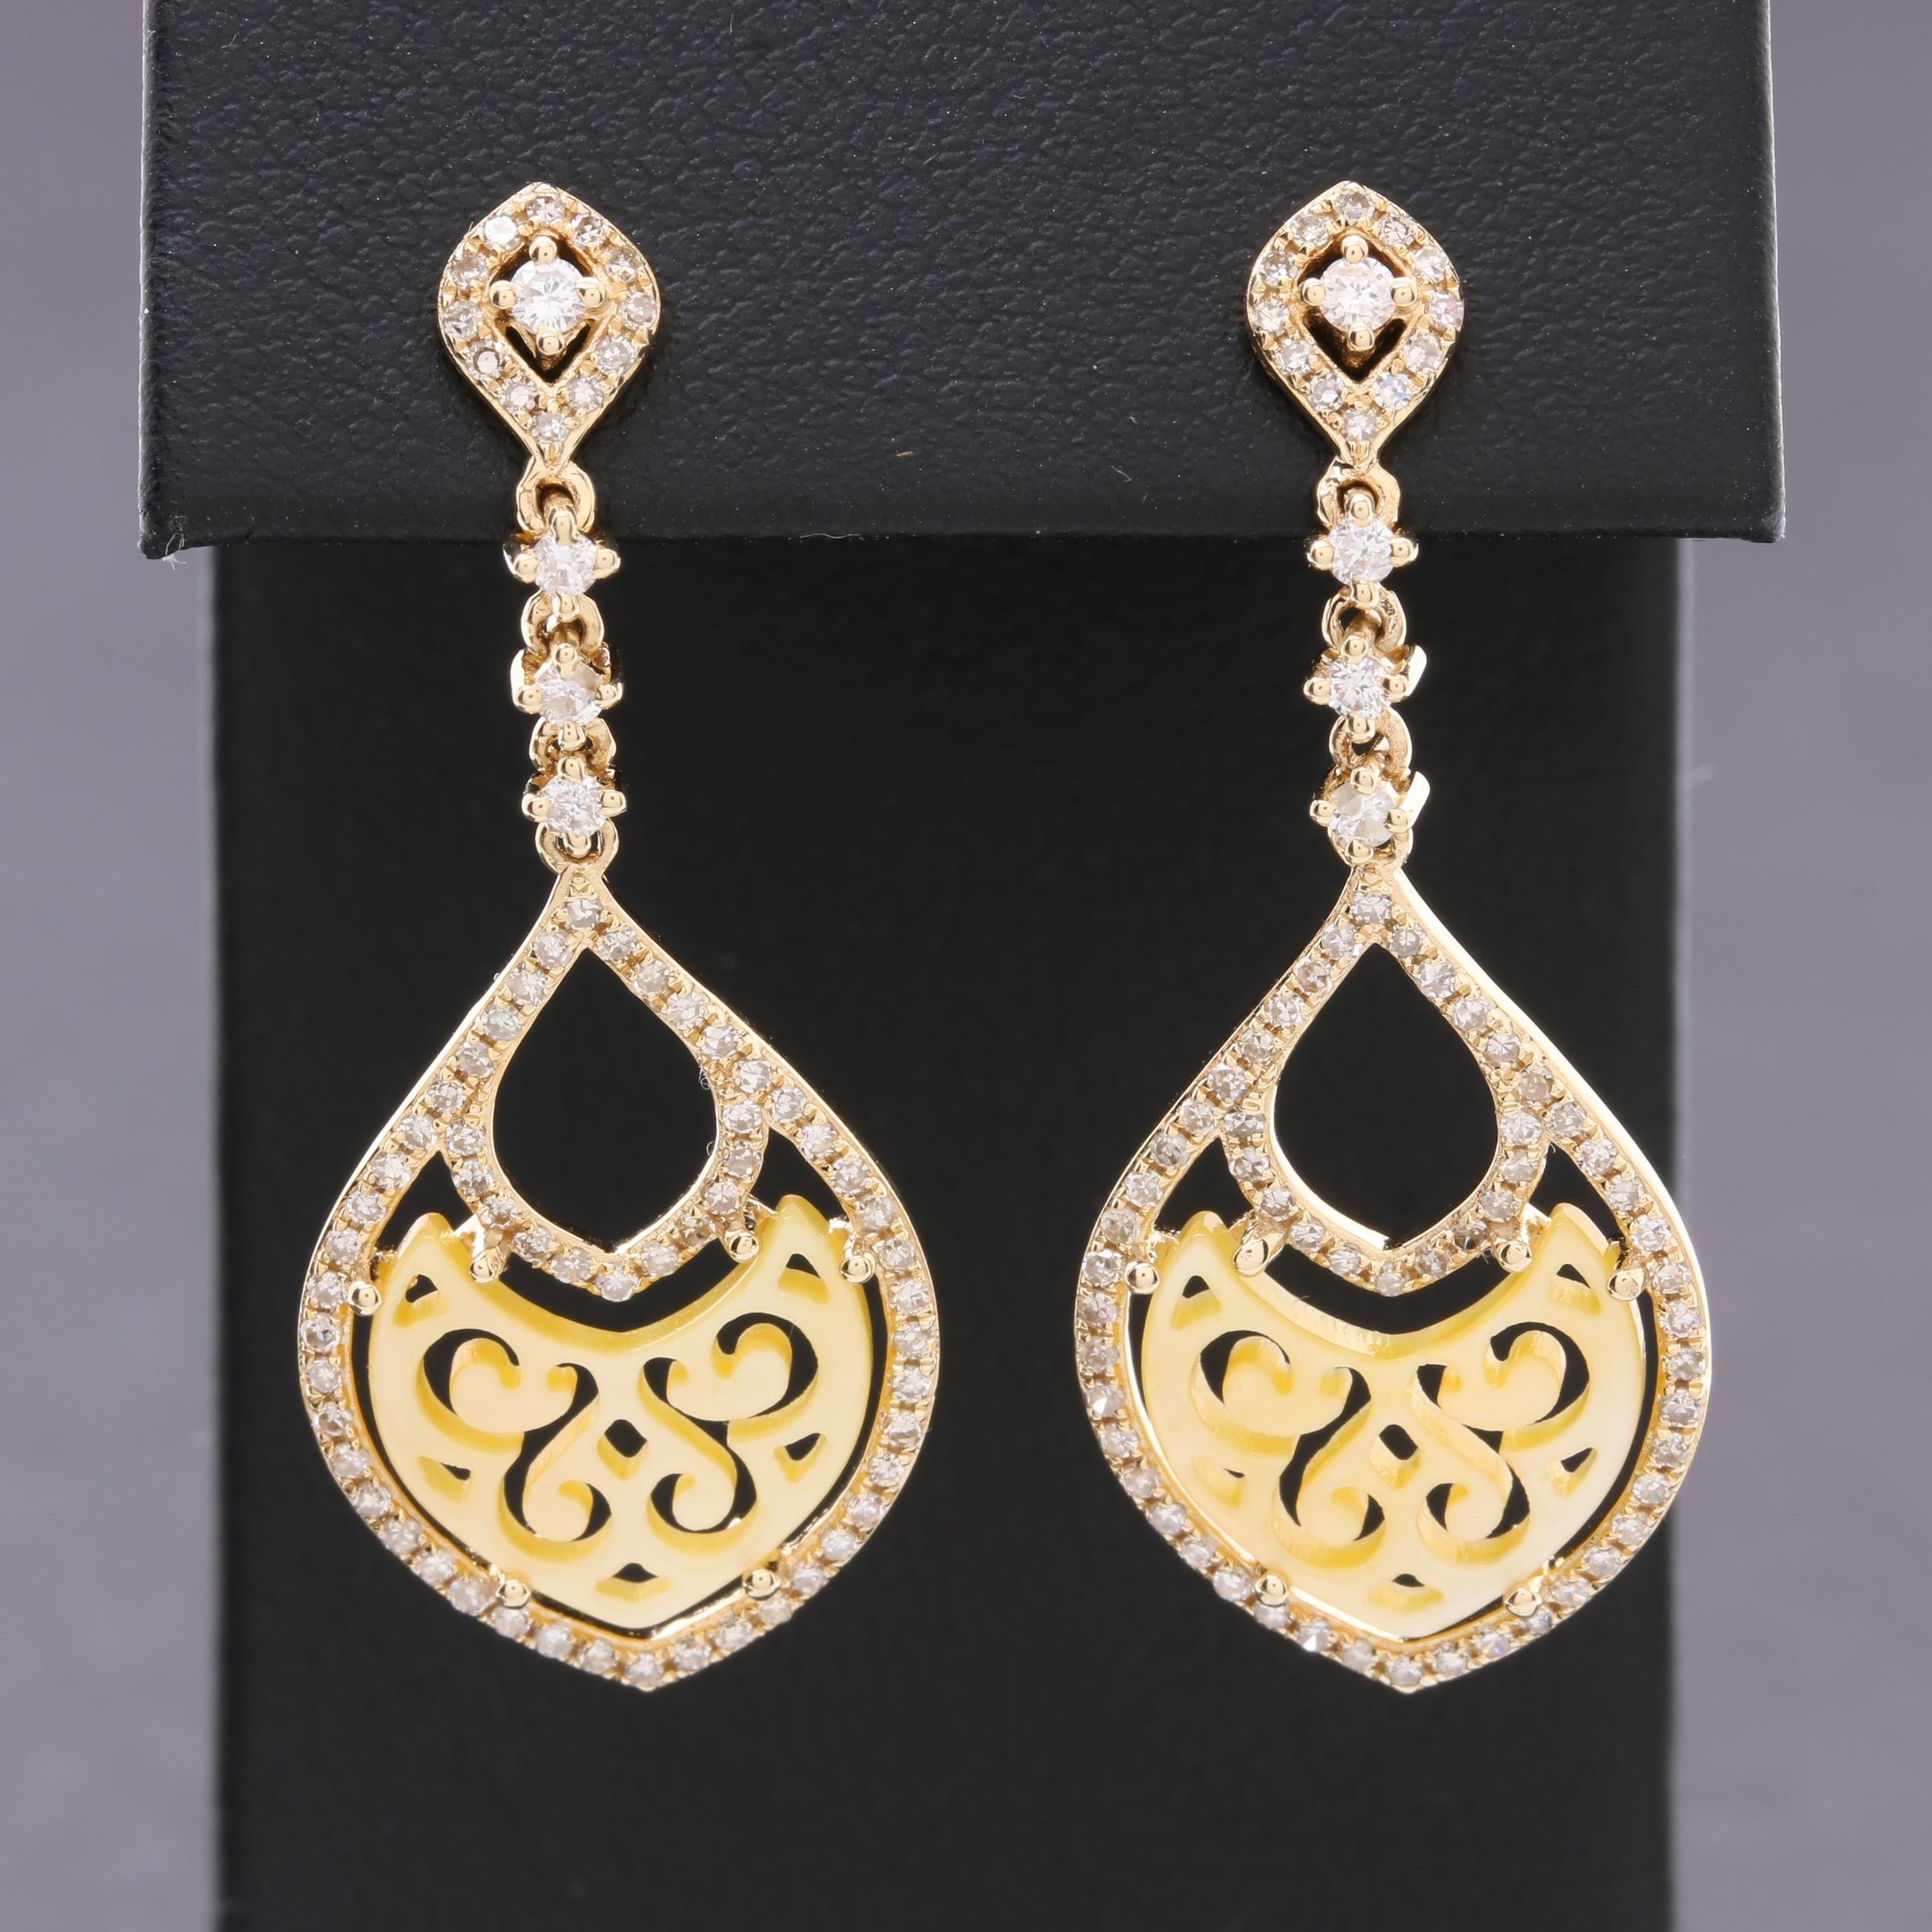 14K Yellow Gold Diamond and Mother of Pearl Dangle Earrings